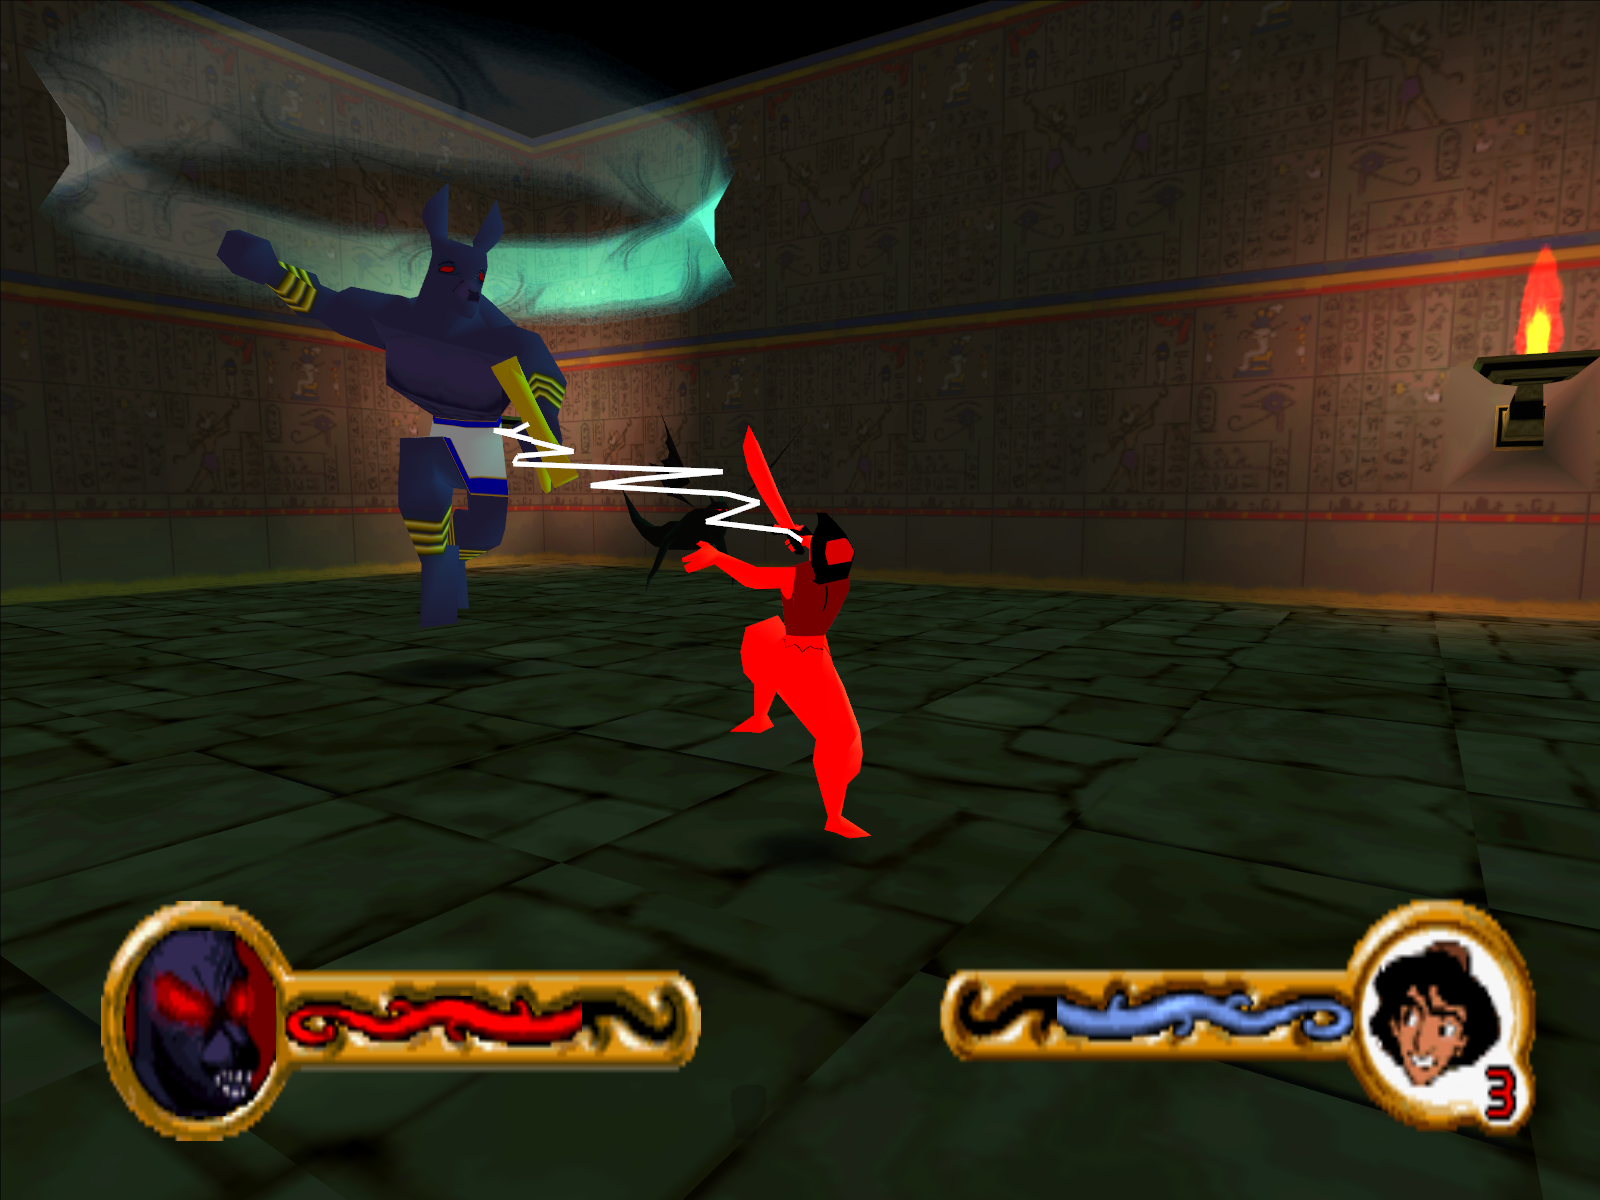 Disney's Aladdin in Nasira's Revenge Windows Anubis electrocuting Aladdin in battle.